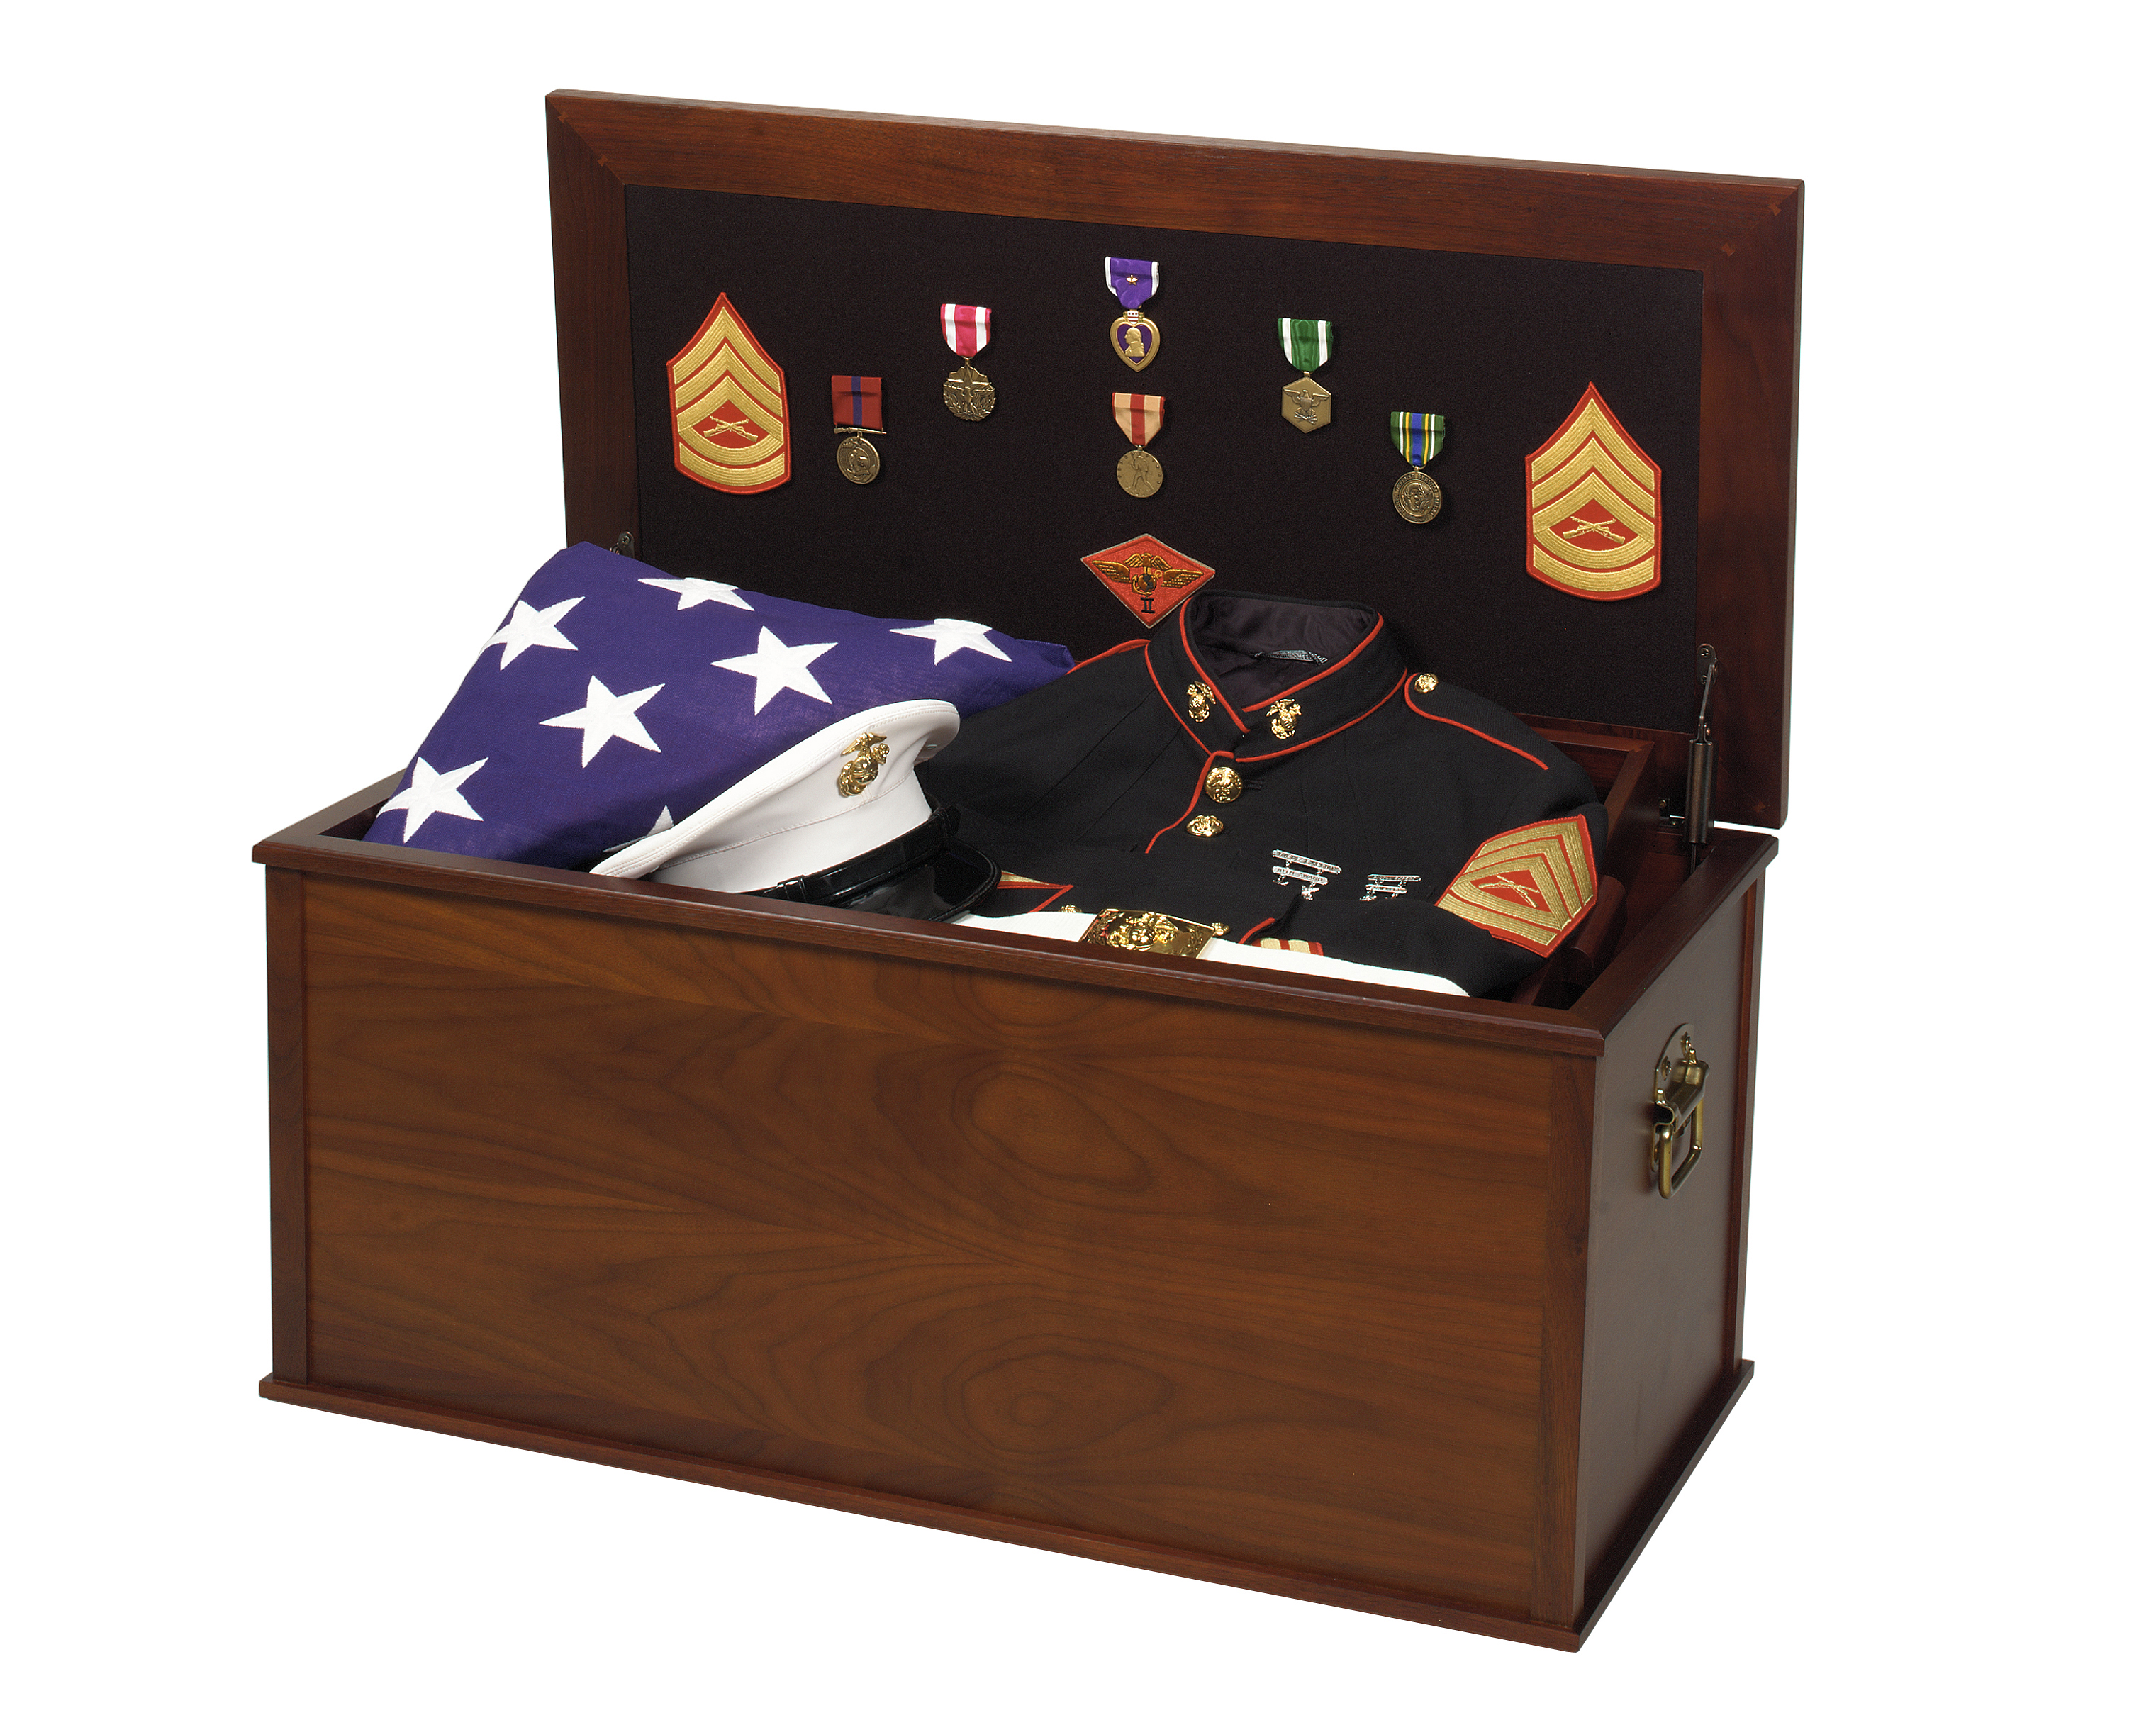 Warrioru0027s Military Foot Locker Display Case Chest Trunk for Uniform Memorabilia and American Flag Case Display MADE IN AMERICA  sc 1 st  Flag Cases & Warrioru0027s Foot Locker Uniform Memorabilia and Flag Case Chest Aboutintivar.Com